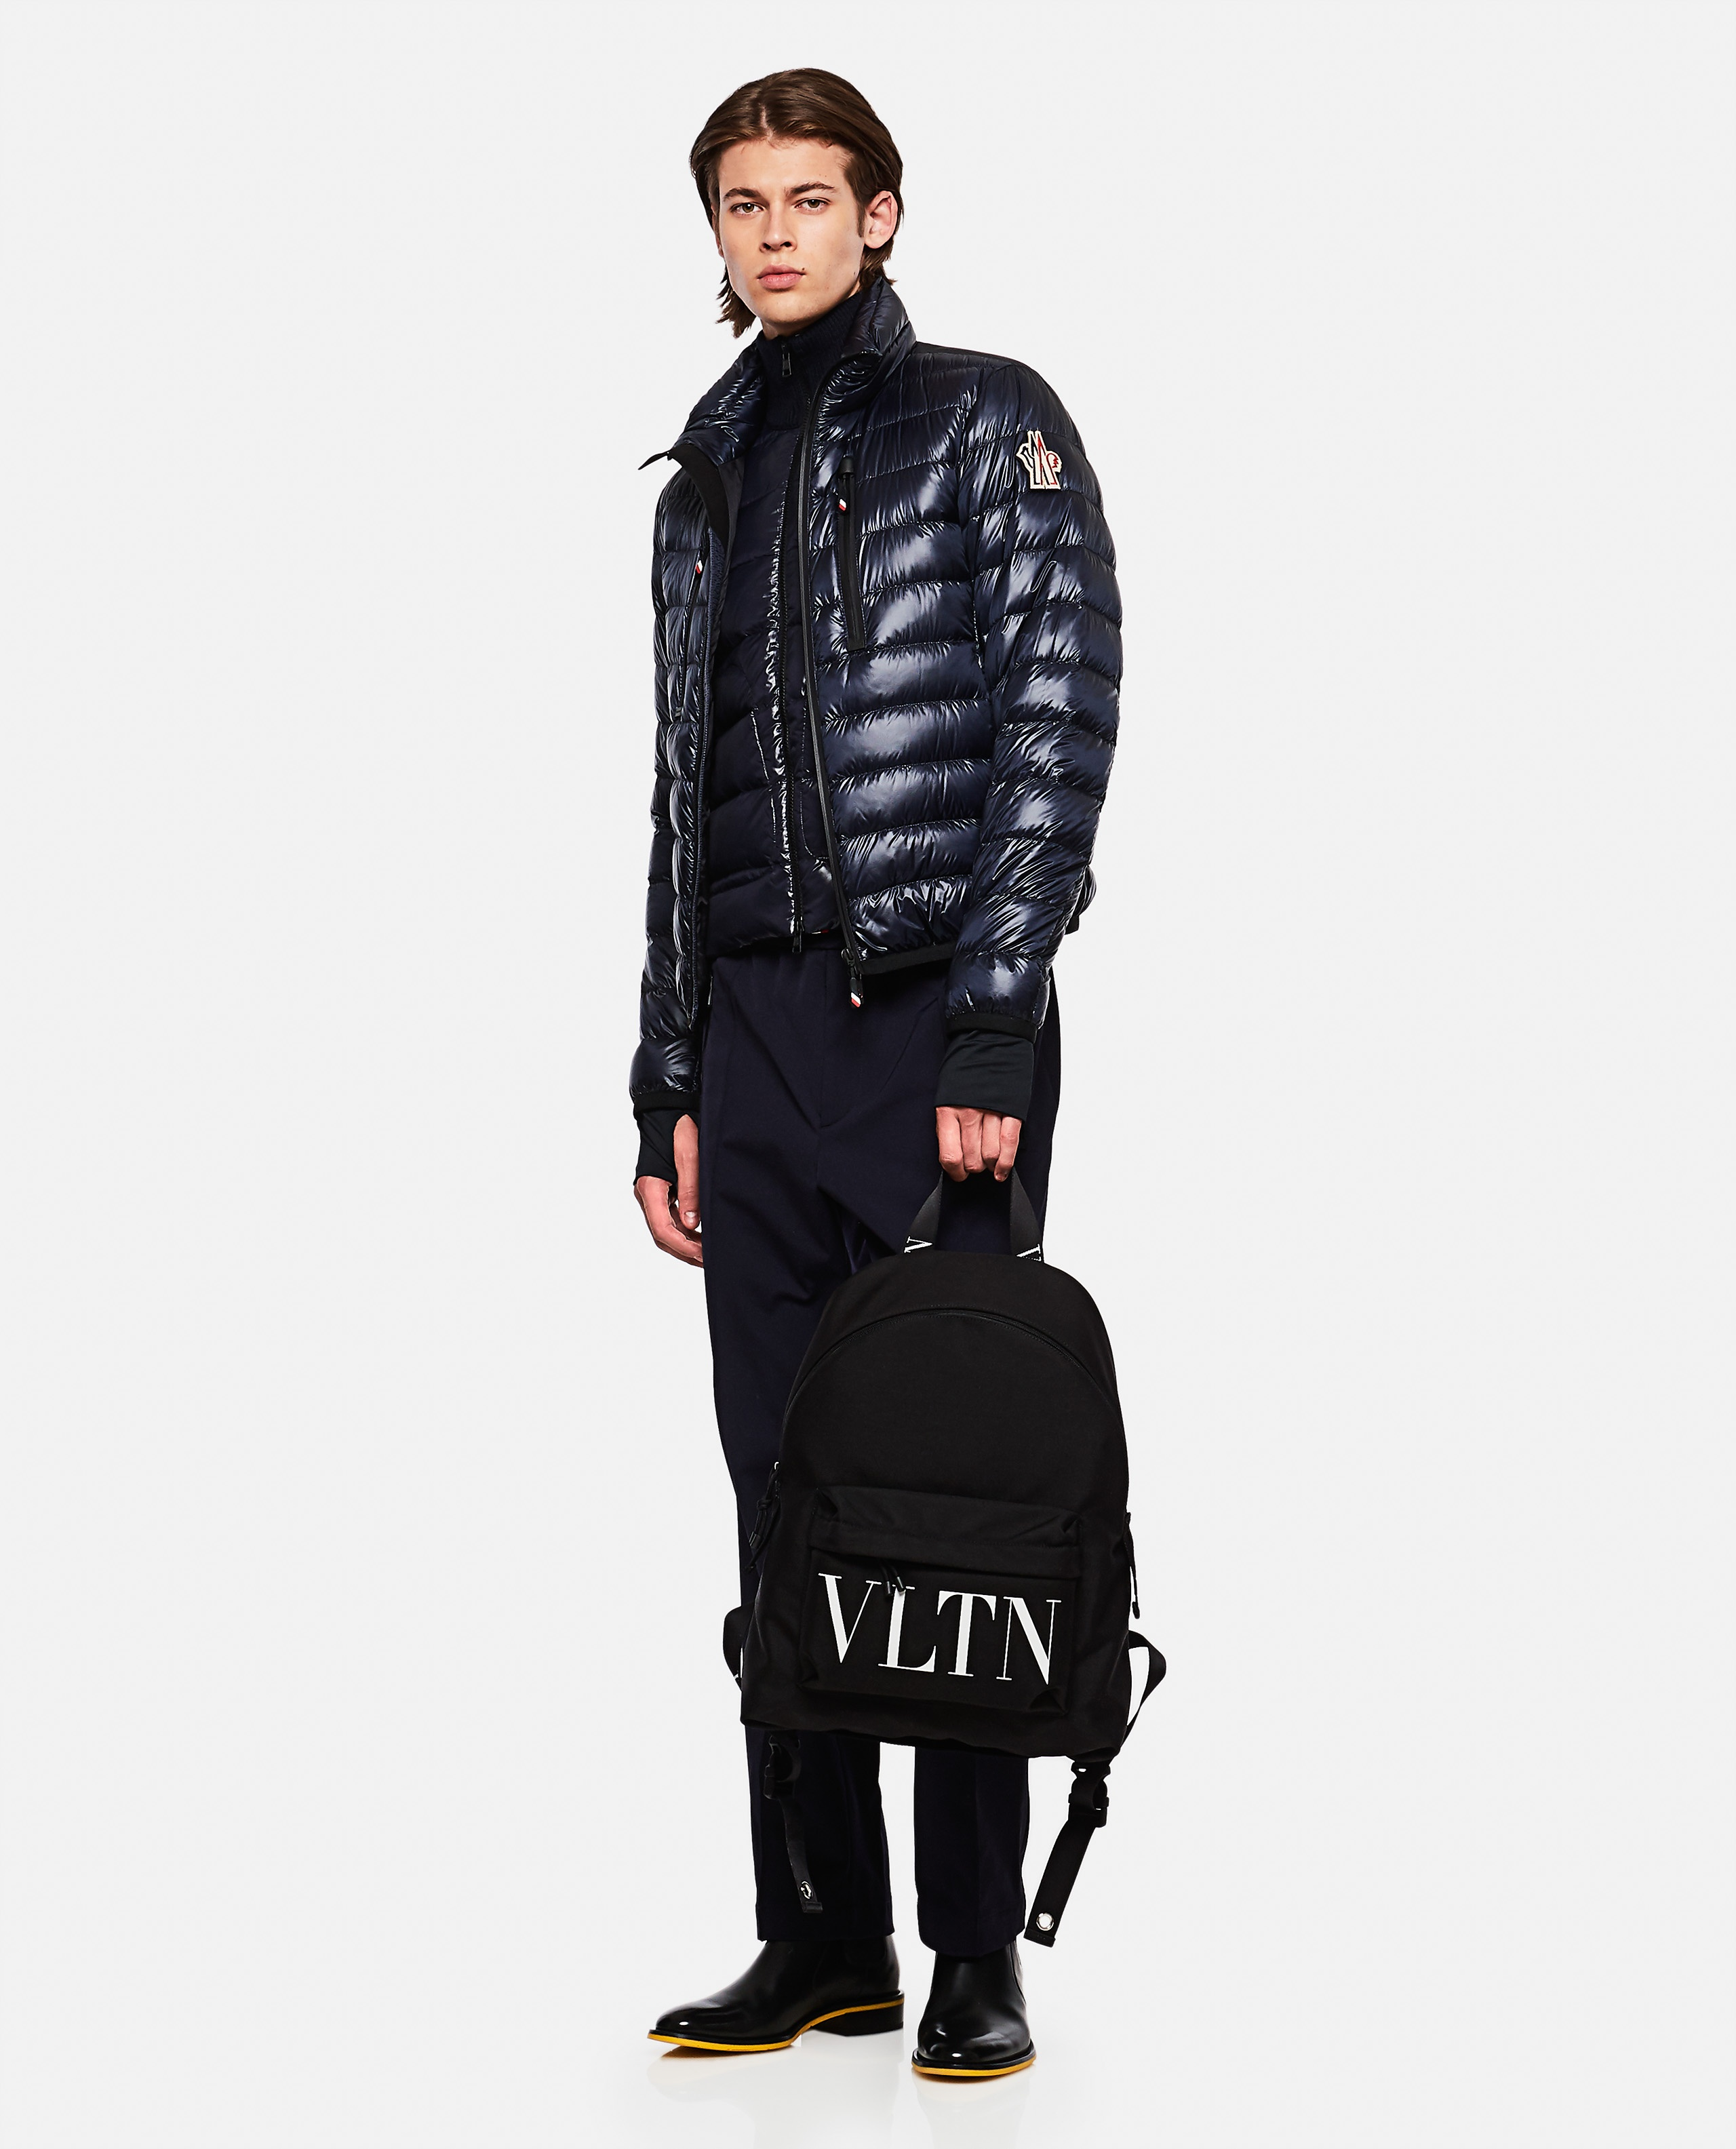 'VLTN' backpack Men Valentino 000263770038985 2